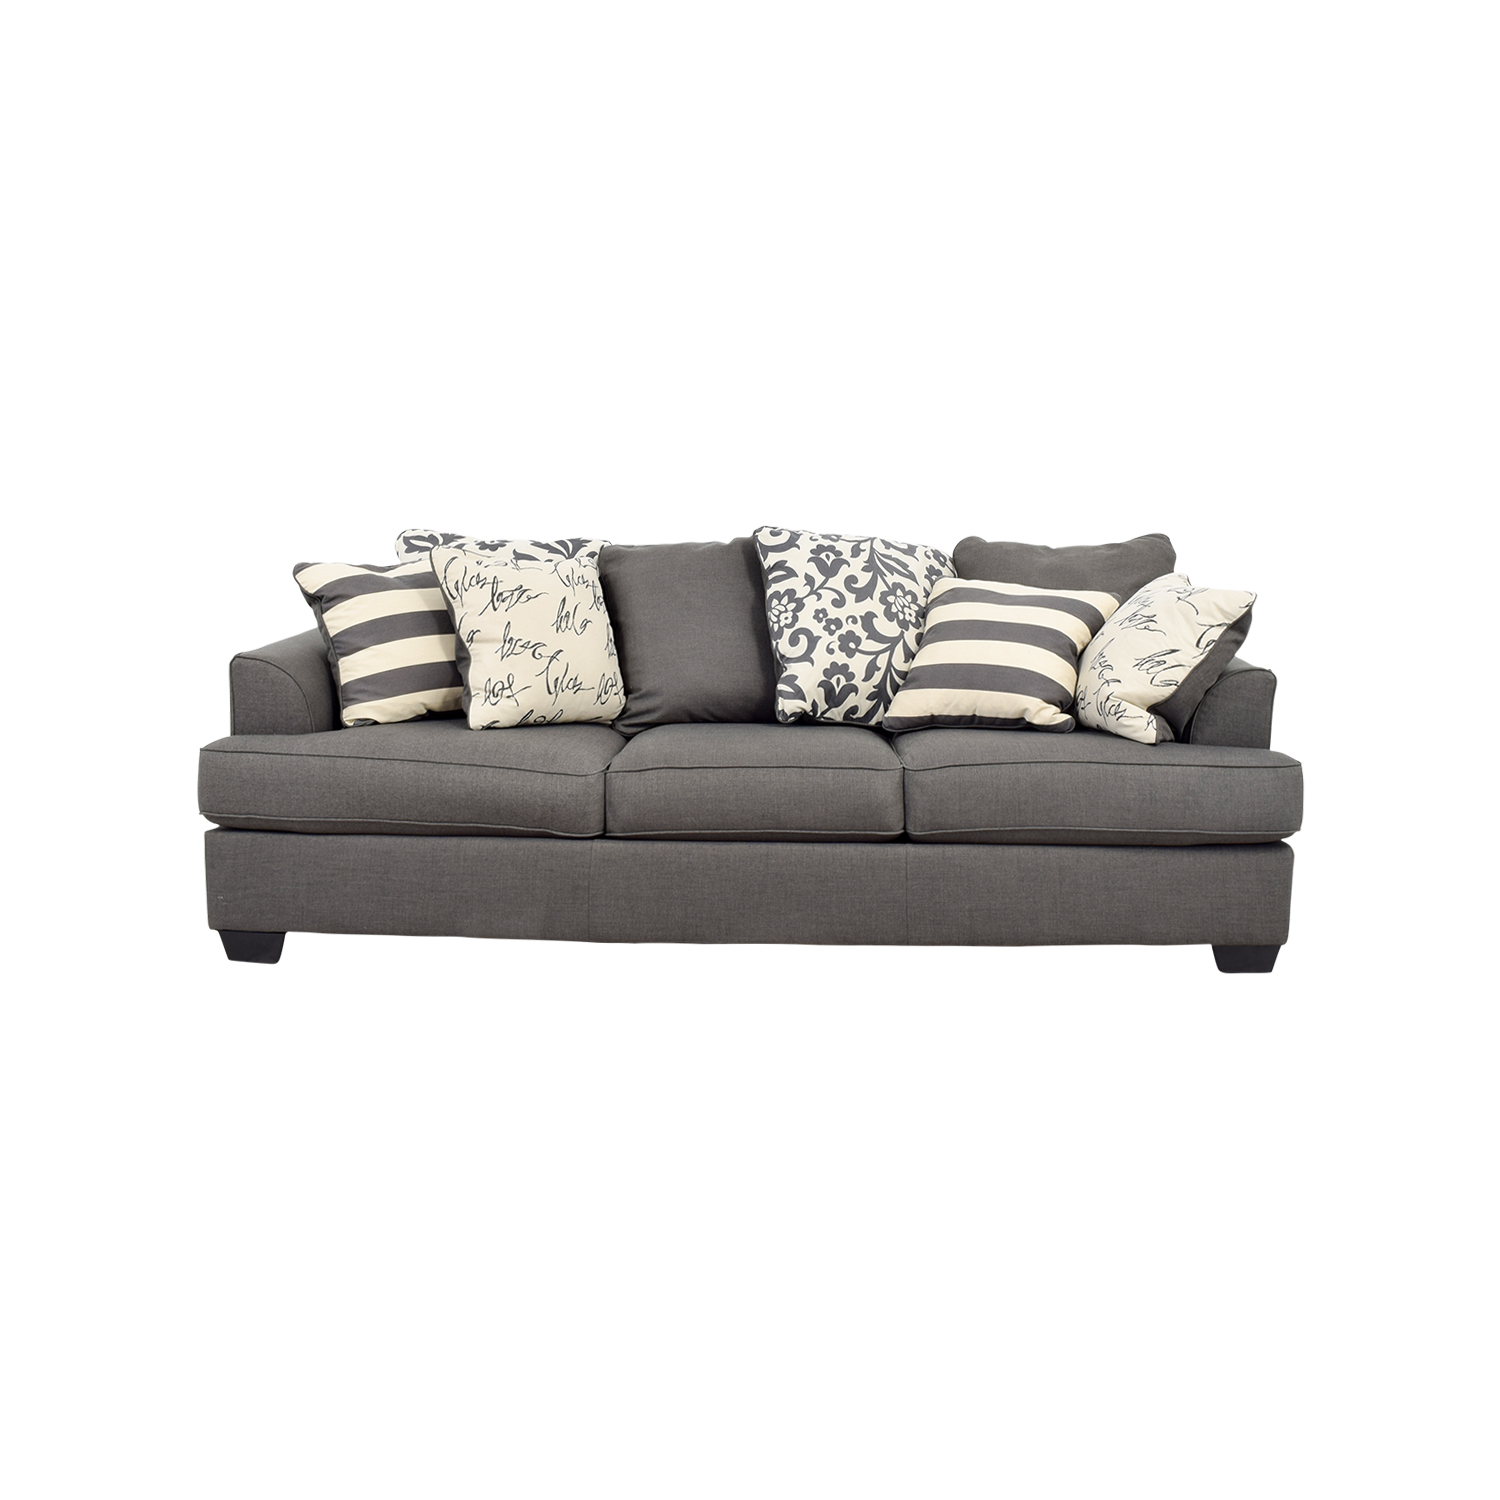 54% OFF Ashley Furniture Ashley Furniture Levon Grey Sofa Sofas